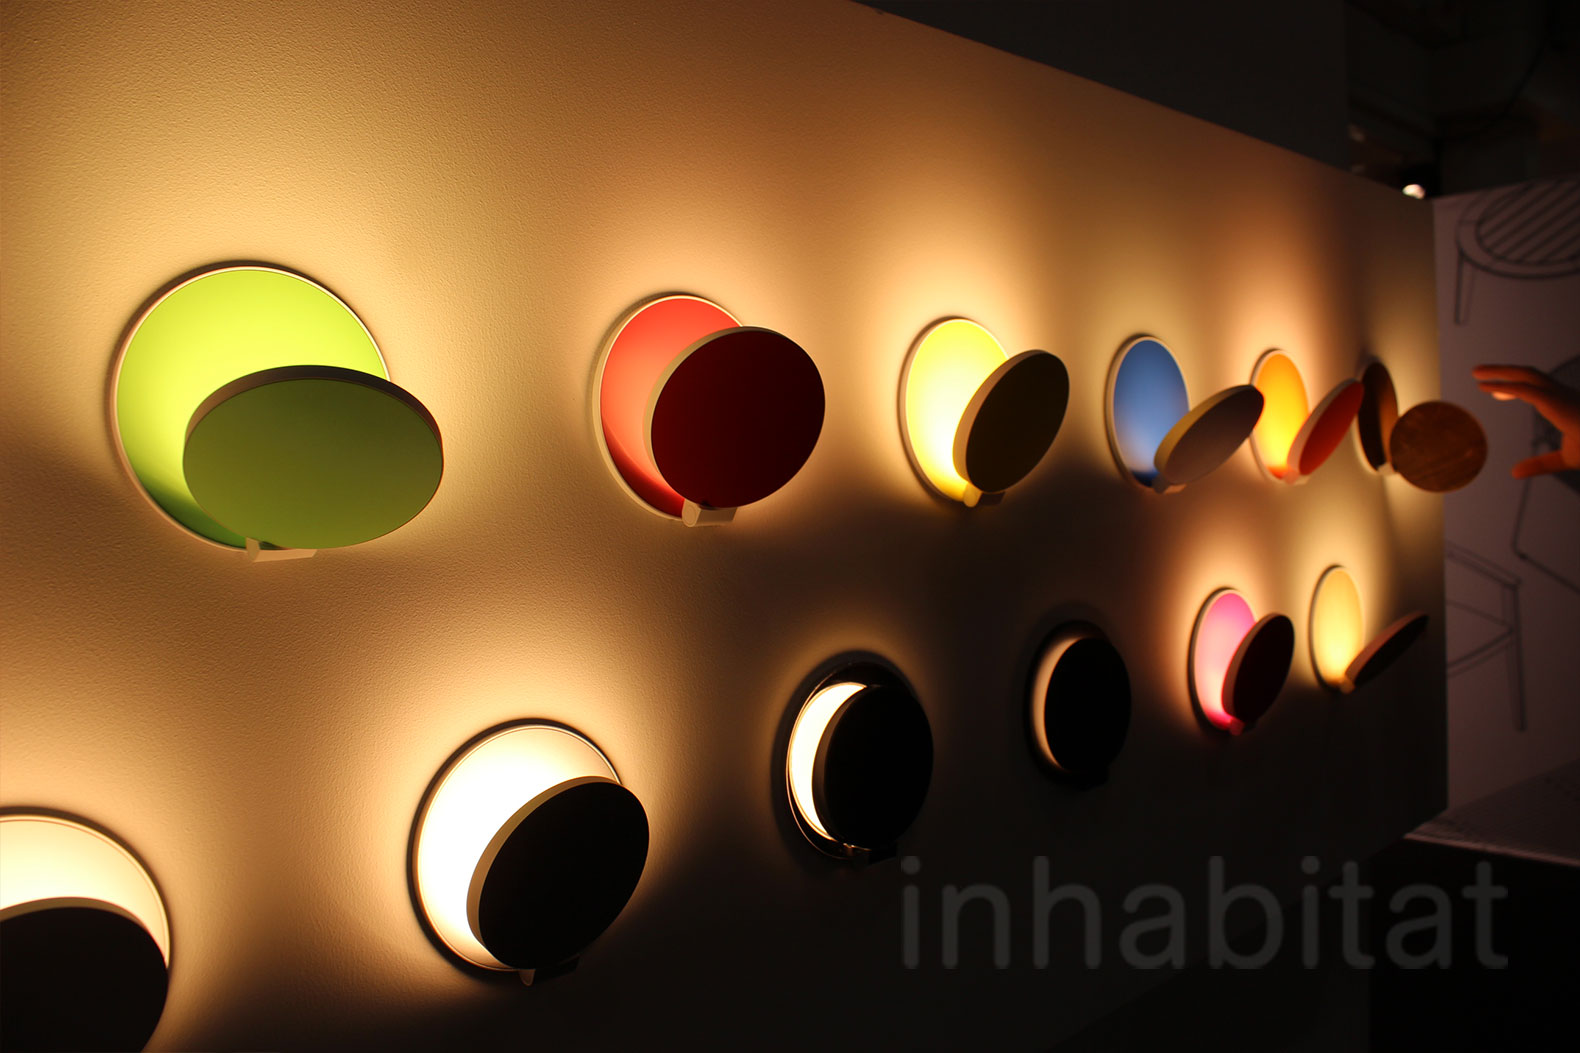 Flippable, Dimmable Gravy LED Wall Sconces Are Playful Wall Candy For Your  Home | Inhabitat   Green Design, Innovation, Architecture, Green Building